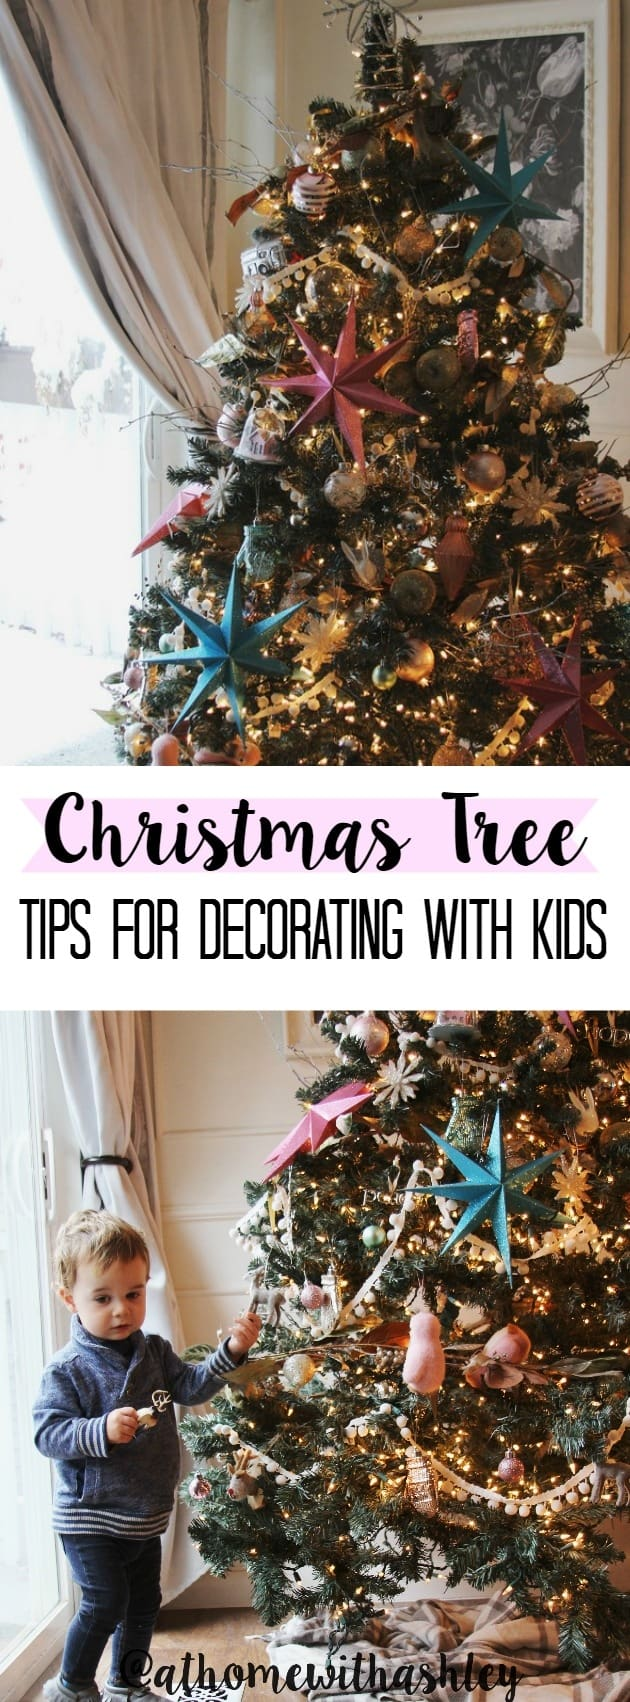 christmas-tree-decorating-tips-for-kids